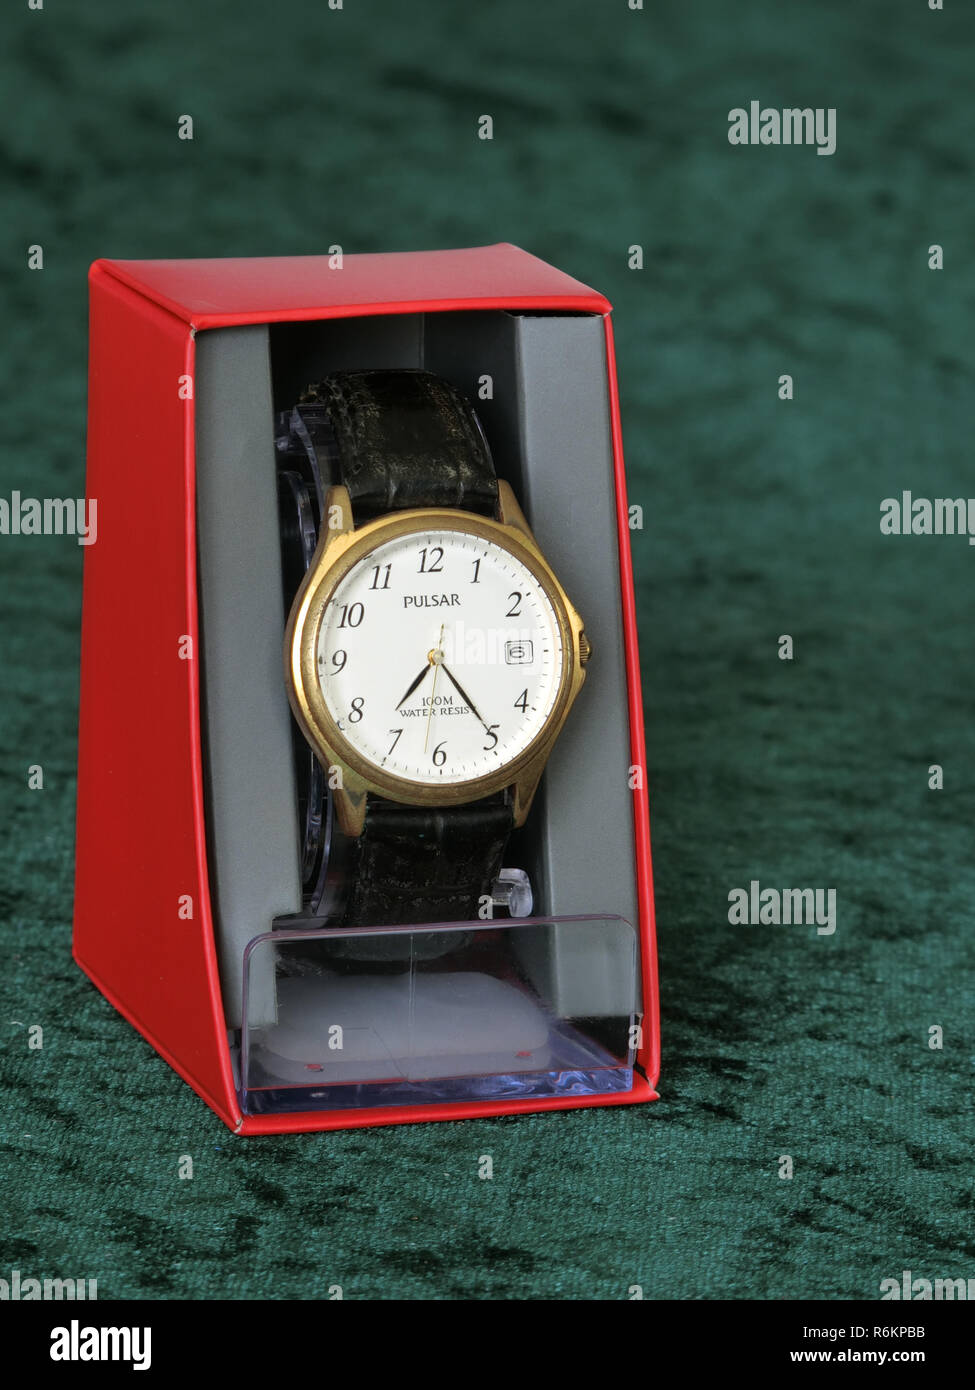 Pulsar Wristwatch or Watch in a Presentation Box - Stock Image